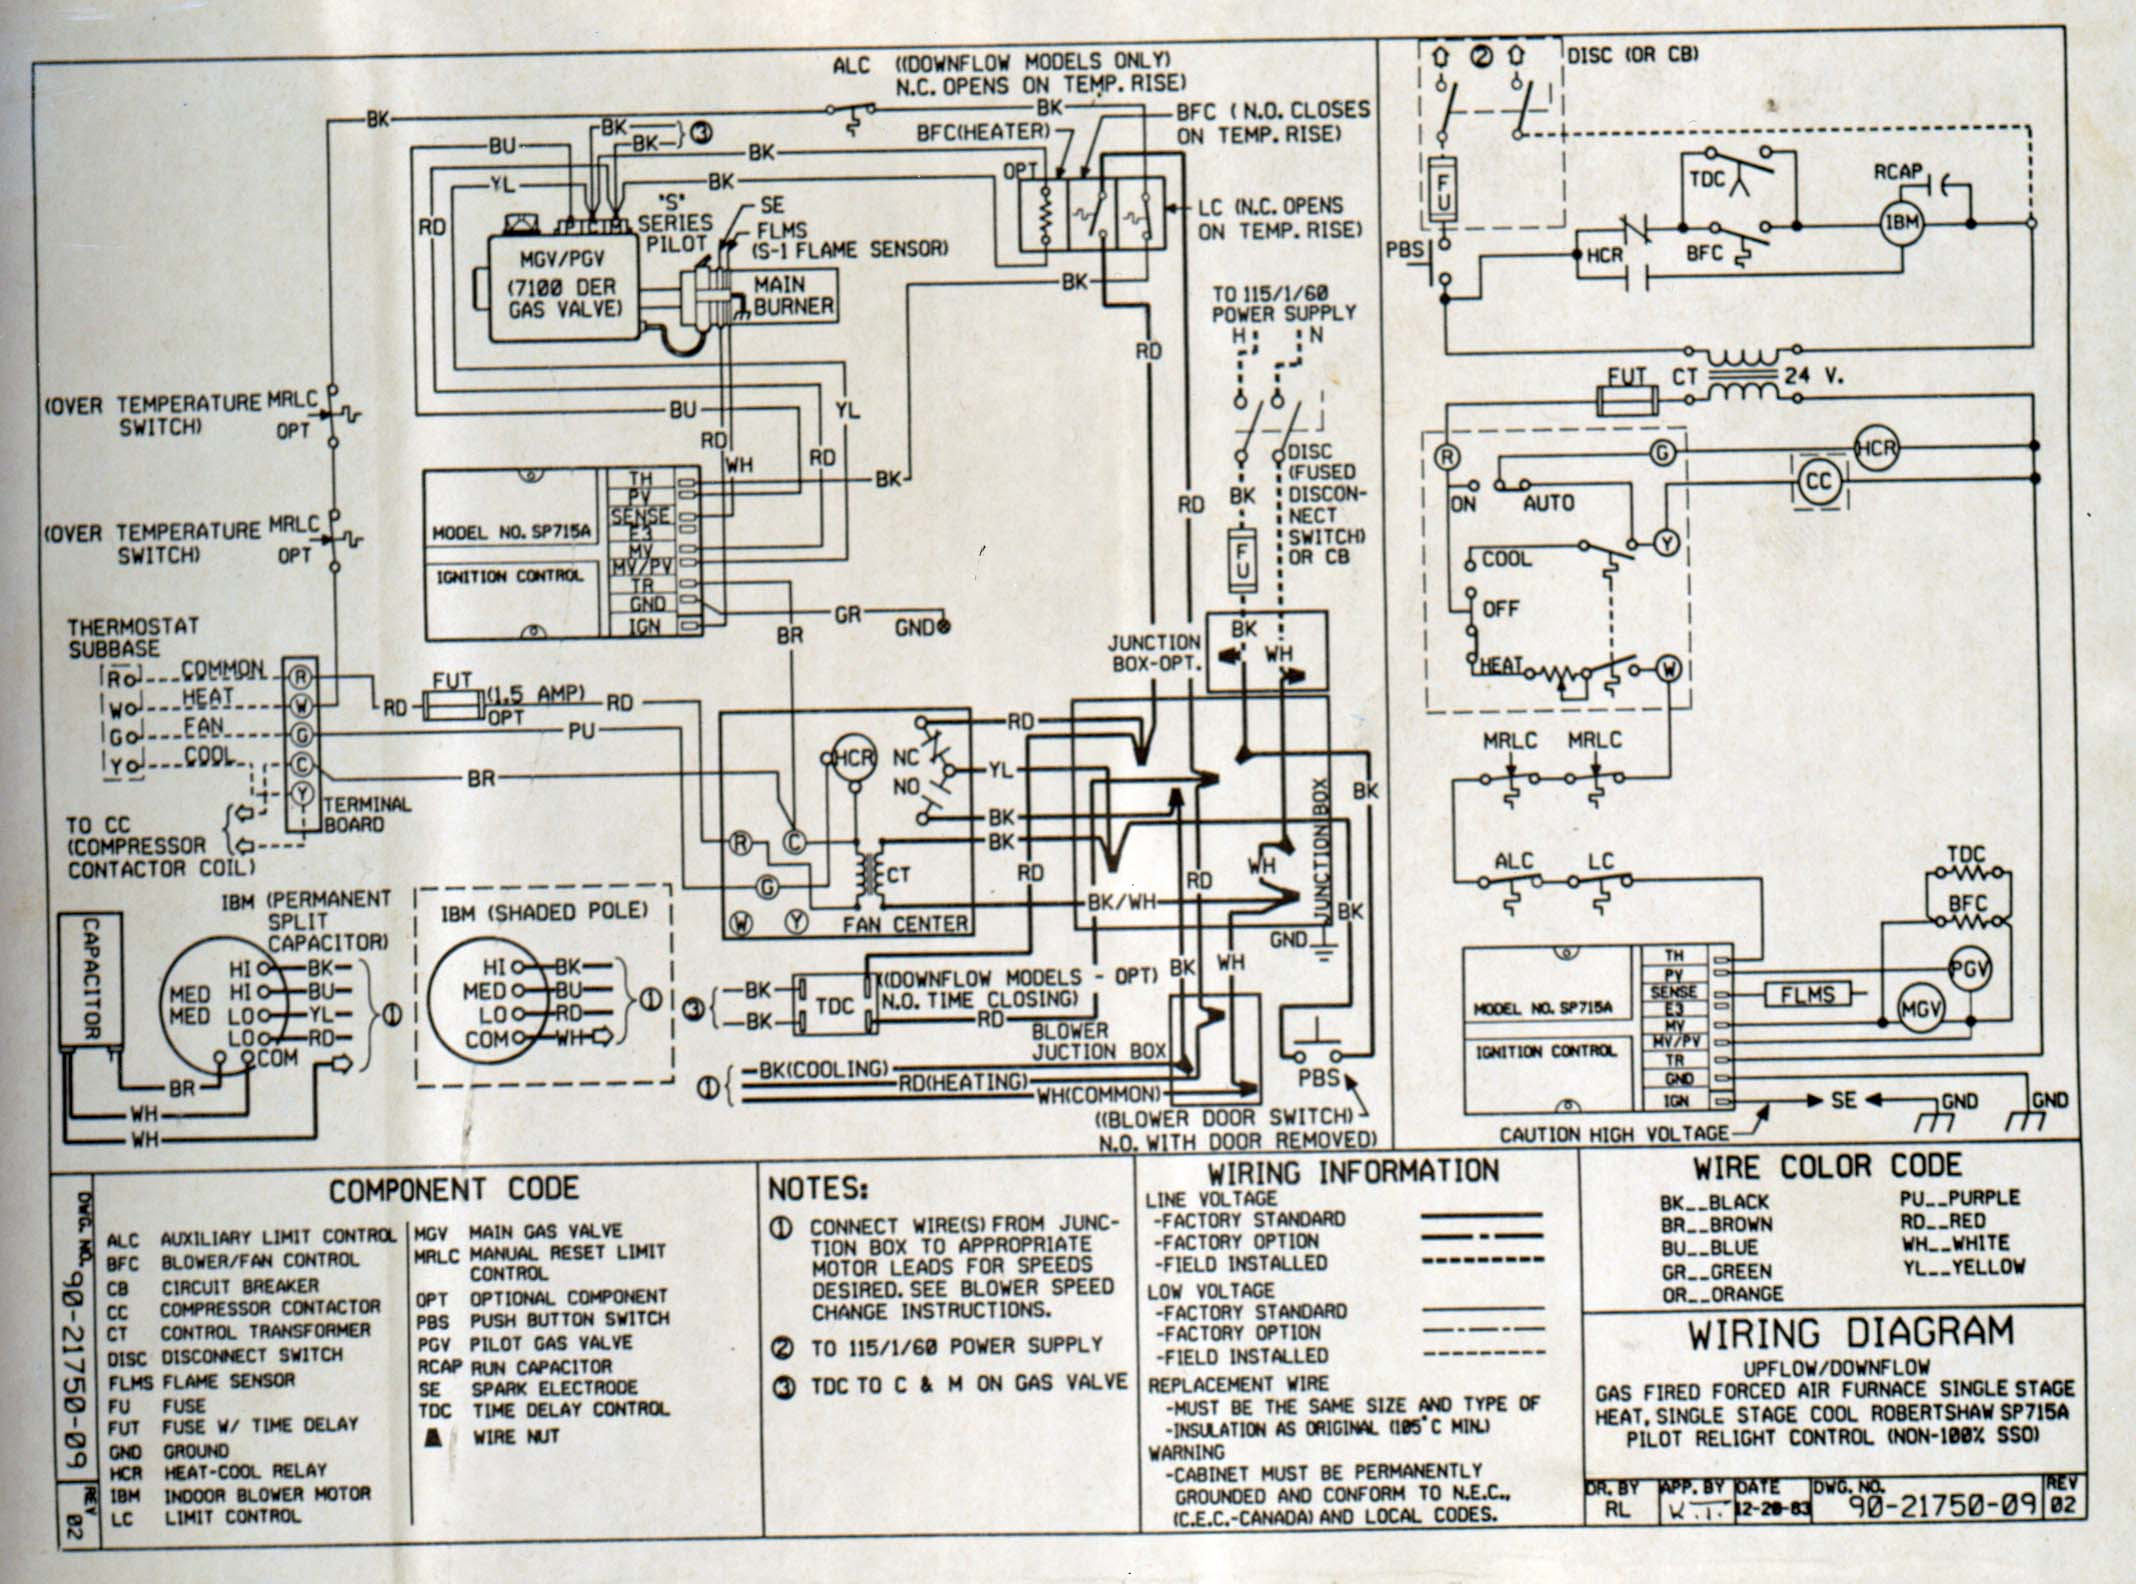 Goodman Heat Pump Wiring Diagram - Wiring Diagrams Hubs - Goodman Heat Pump Wiring Diagram